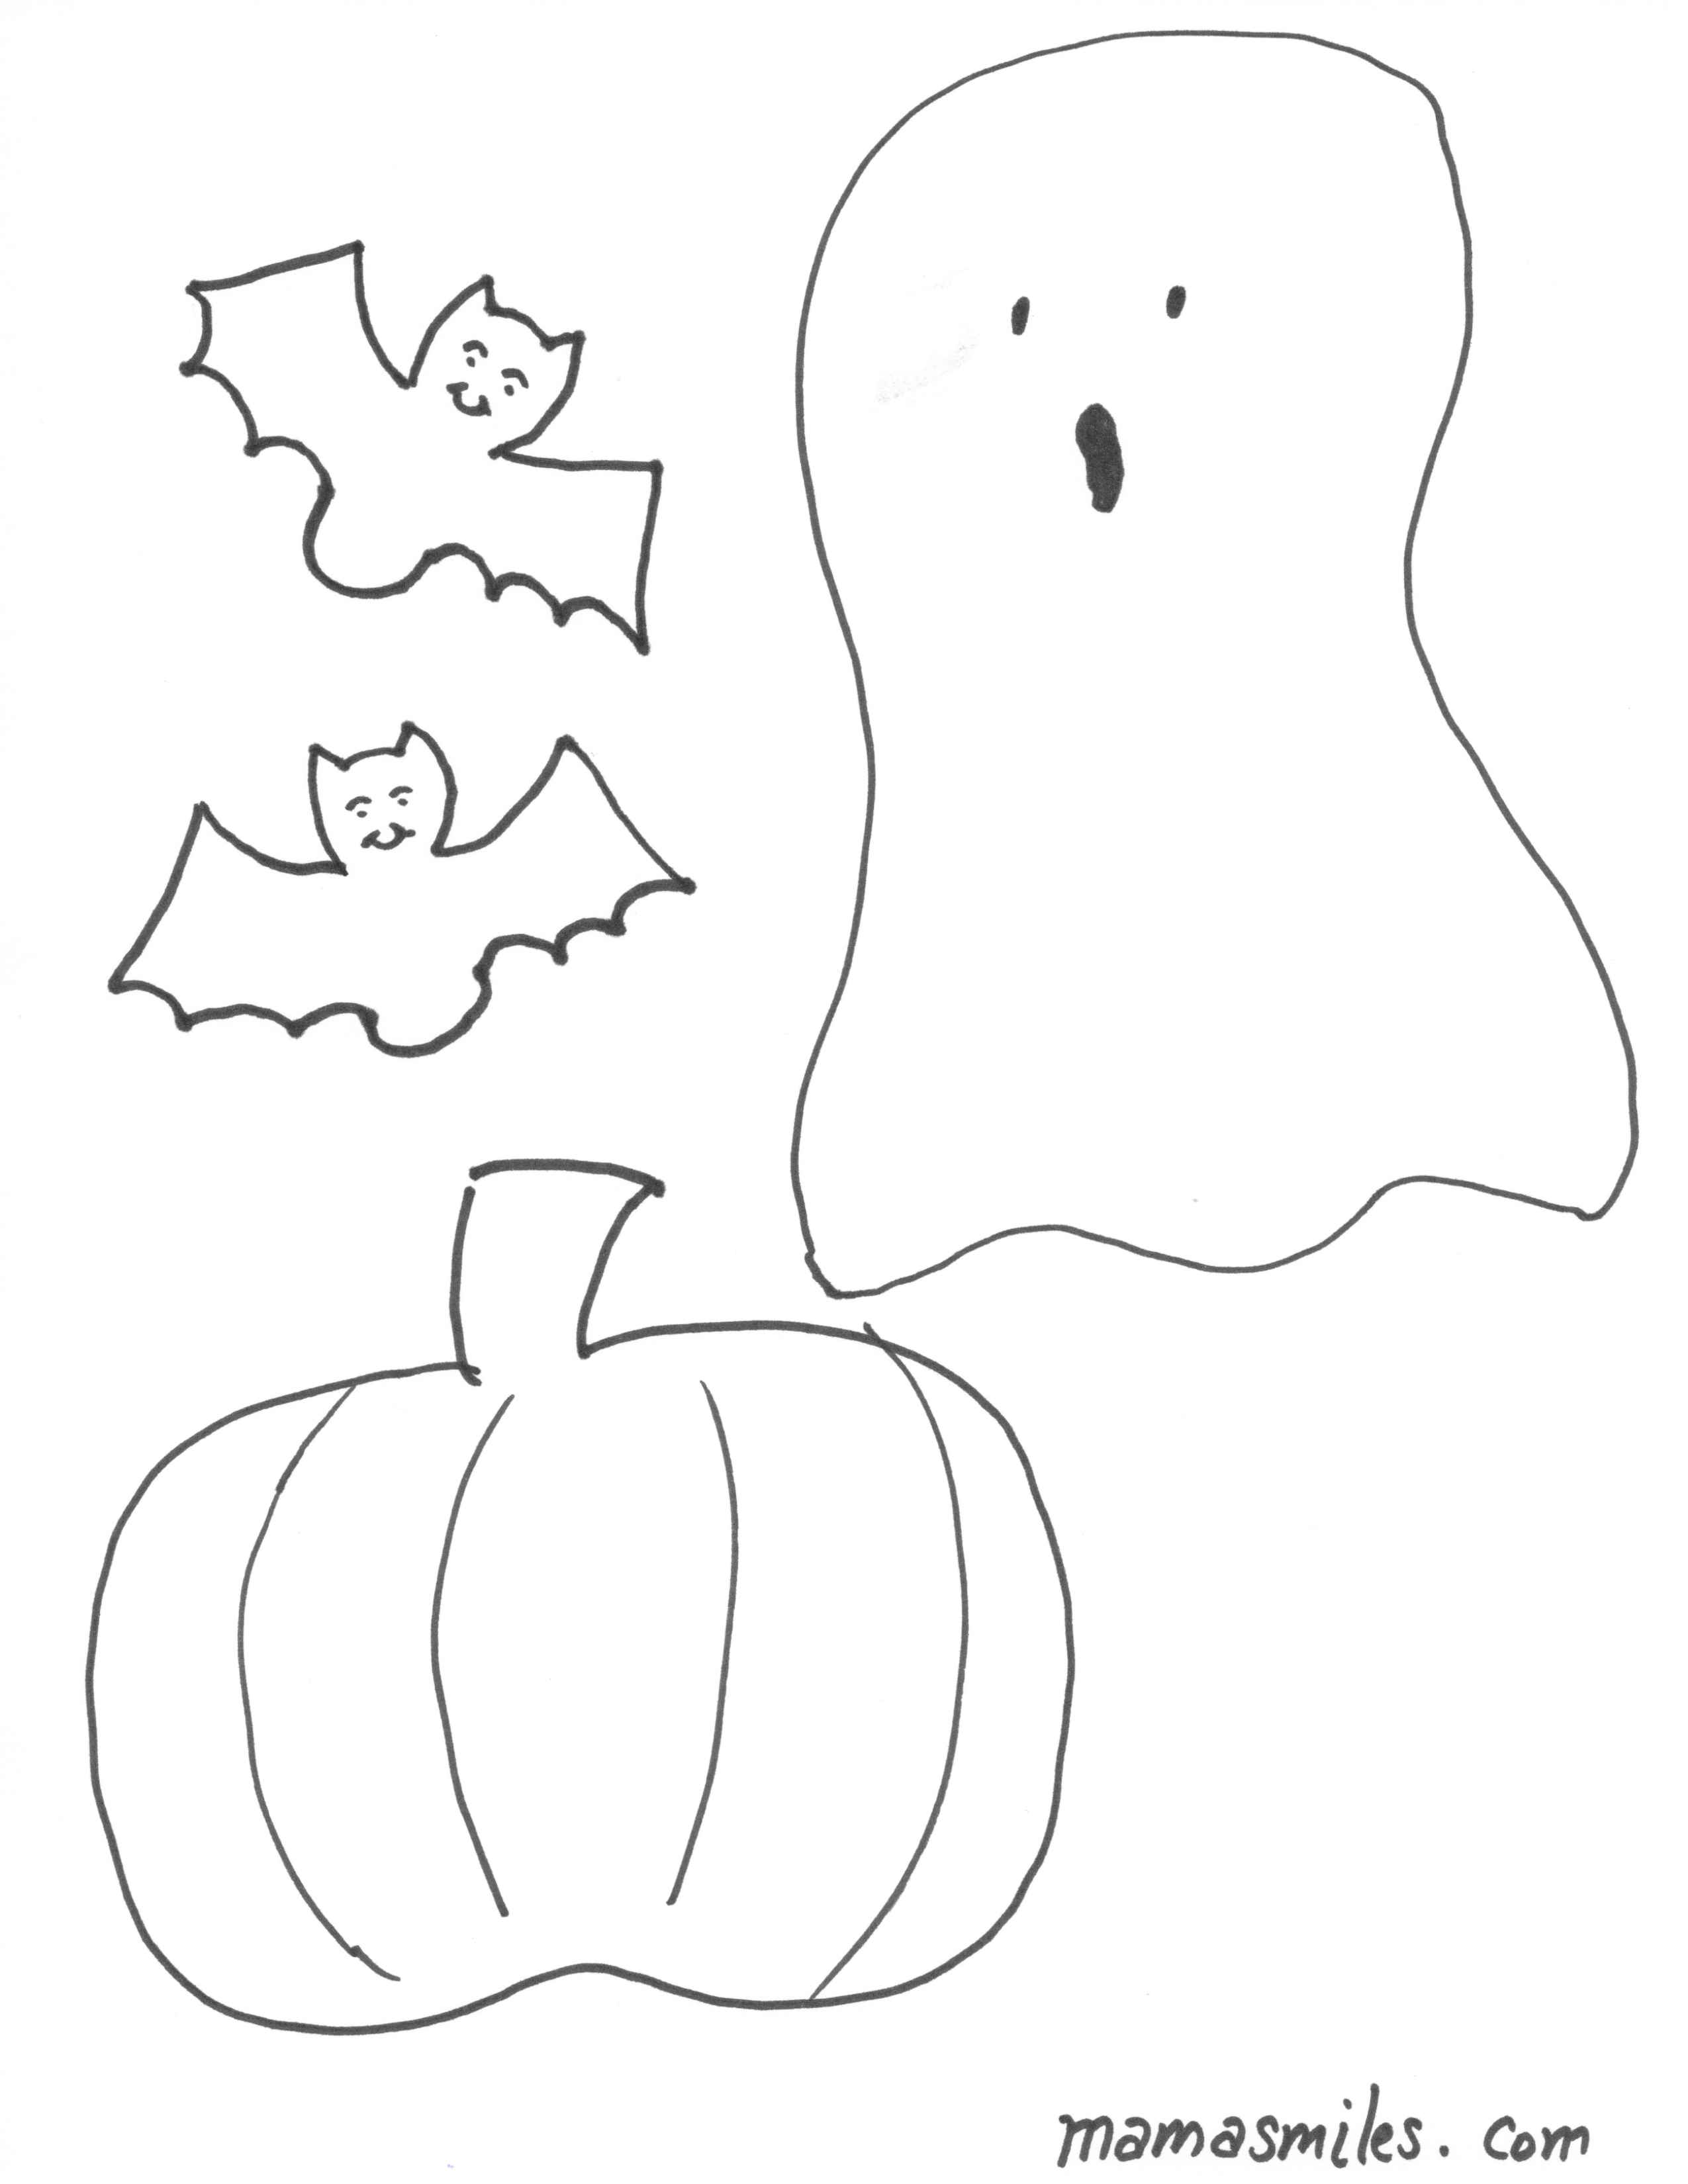 Halloween Coloring Pages and Halloween Felt Board Shapes